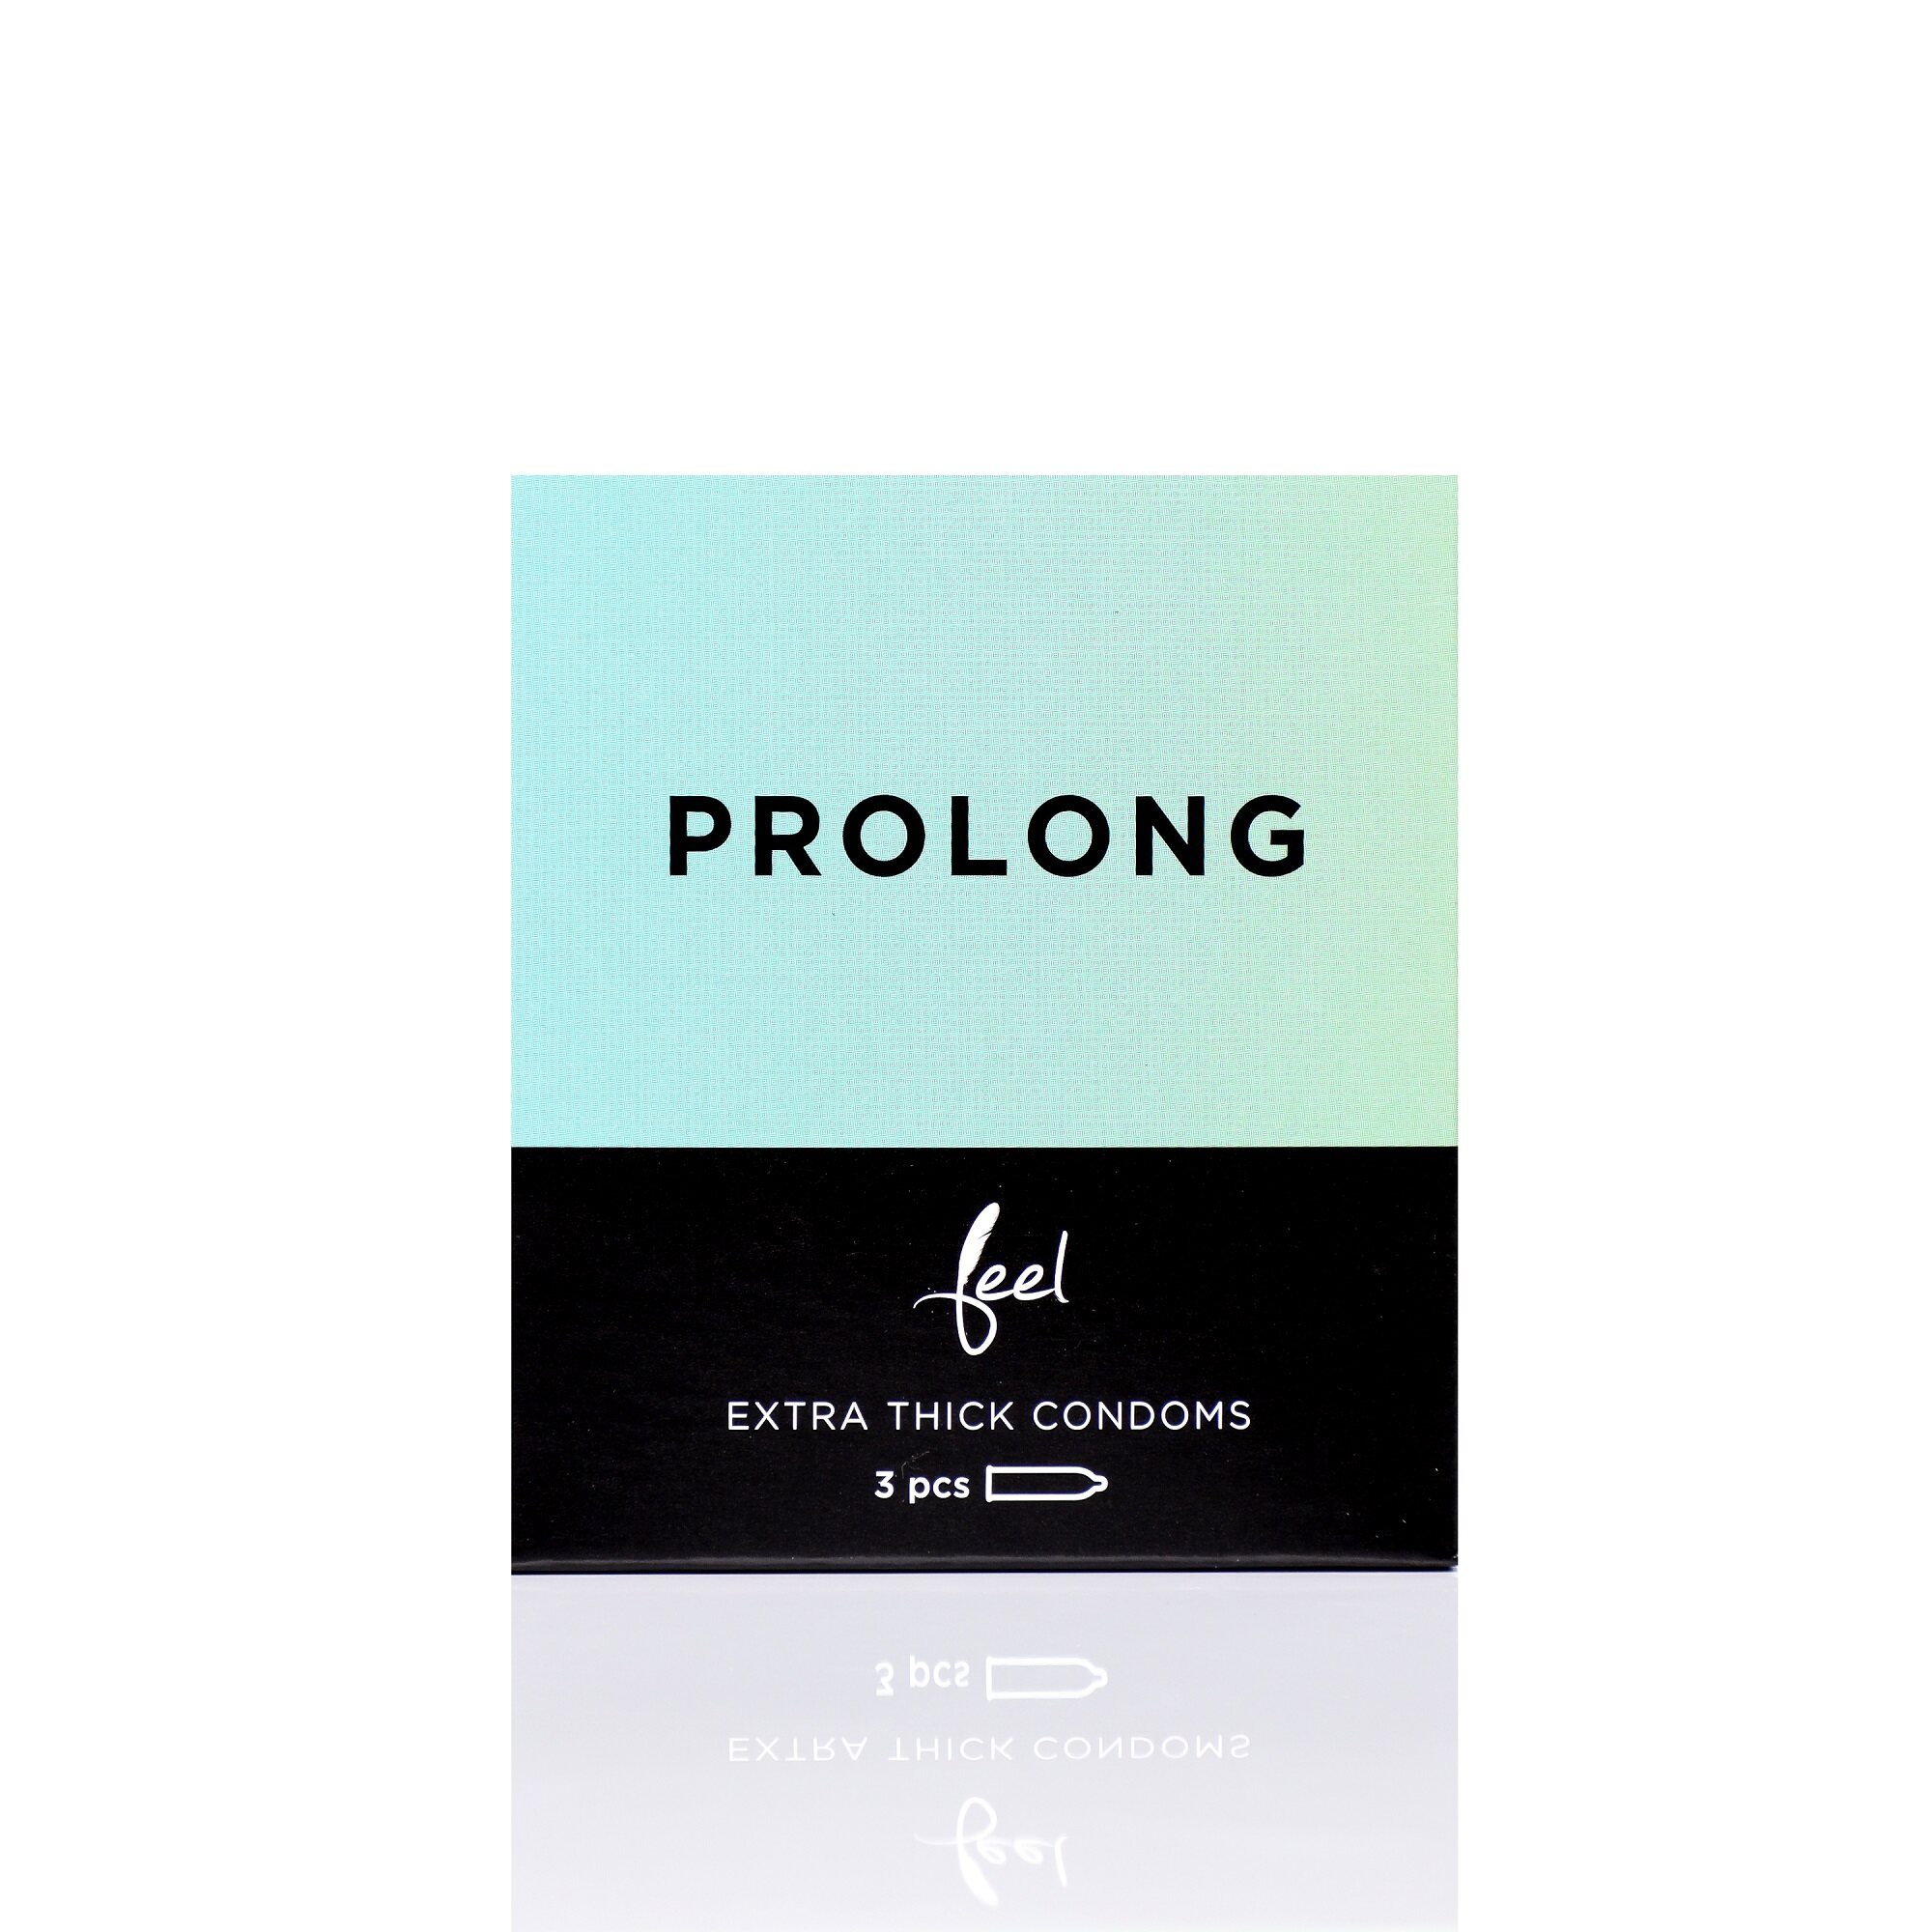 Nulatex Feel Prolong Extra Thick Condoms 3pcs